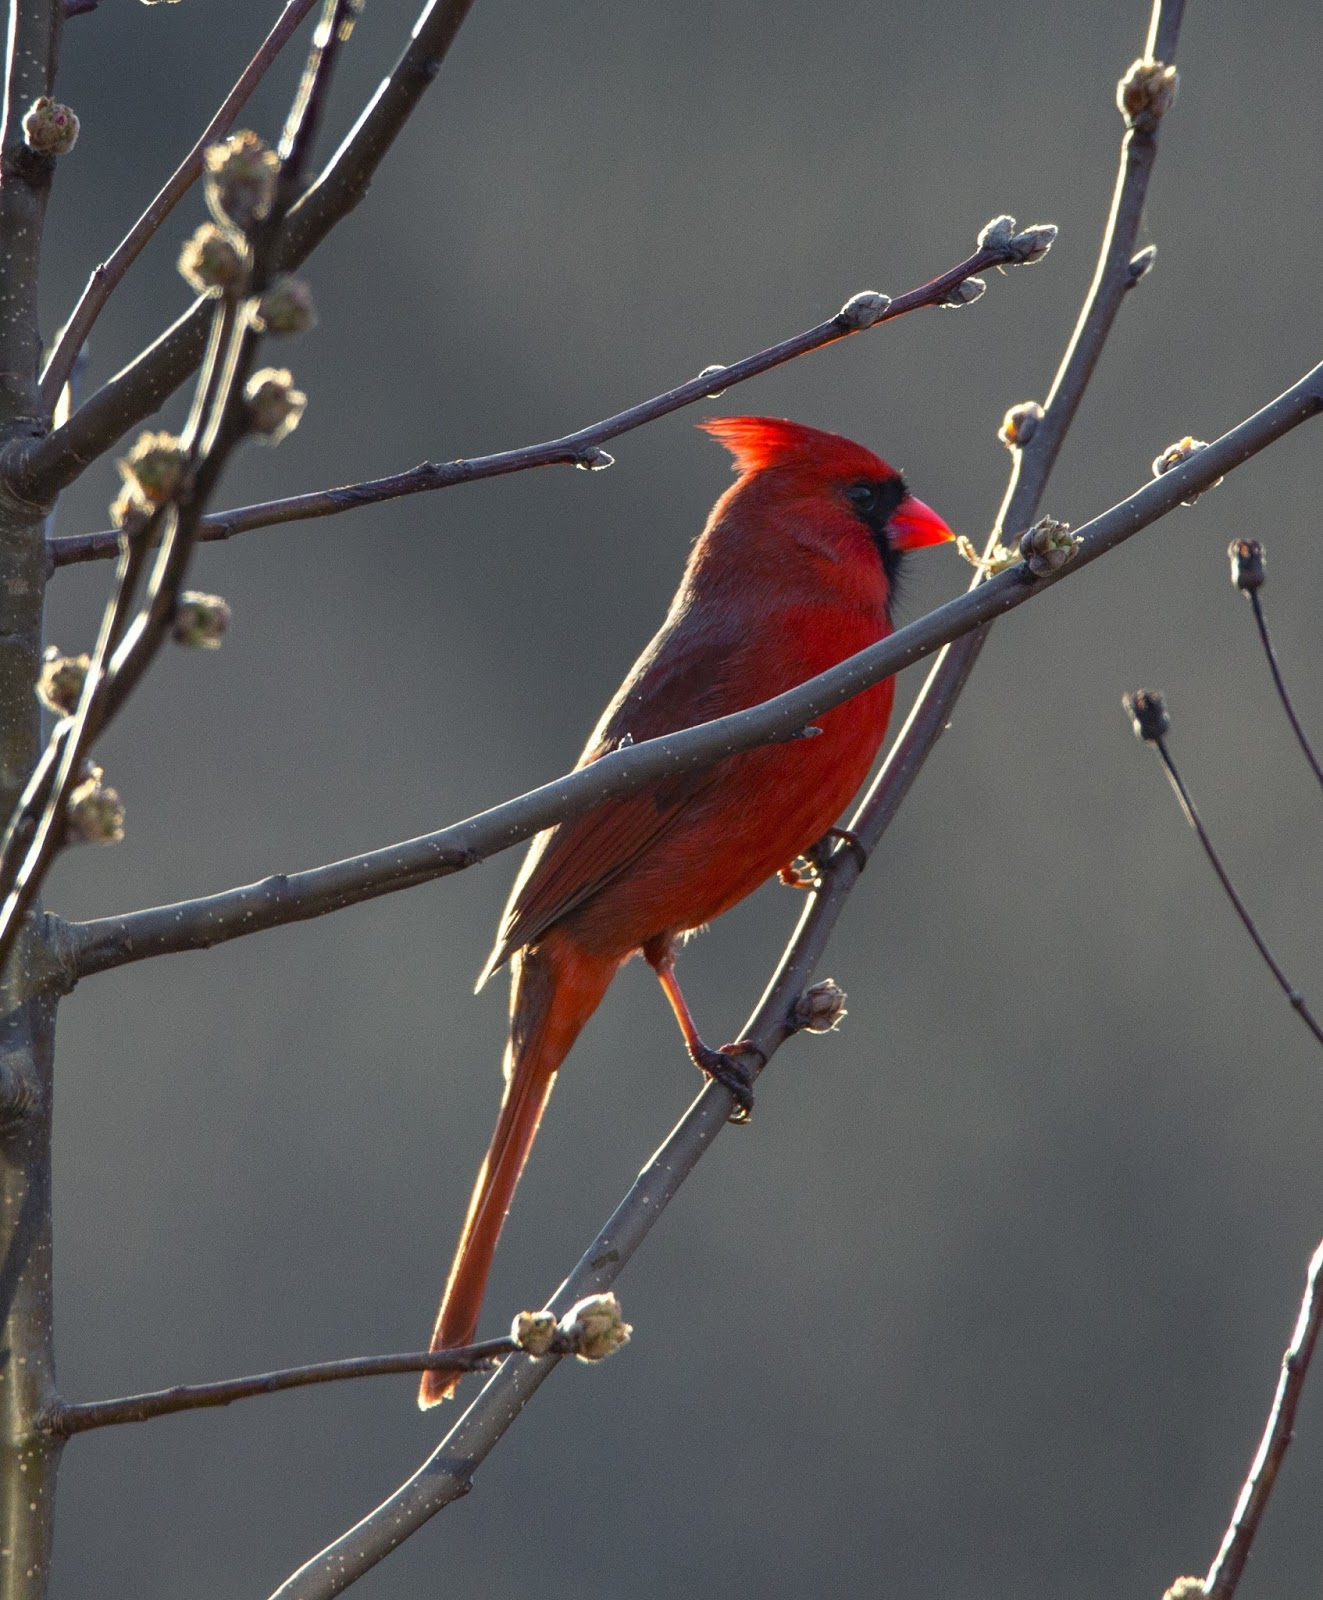 Picture of a red cardinal bird.